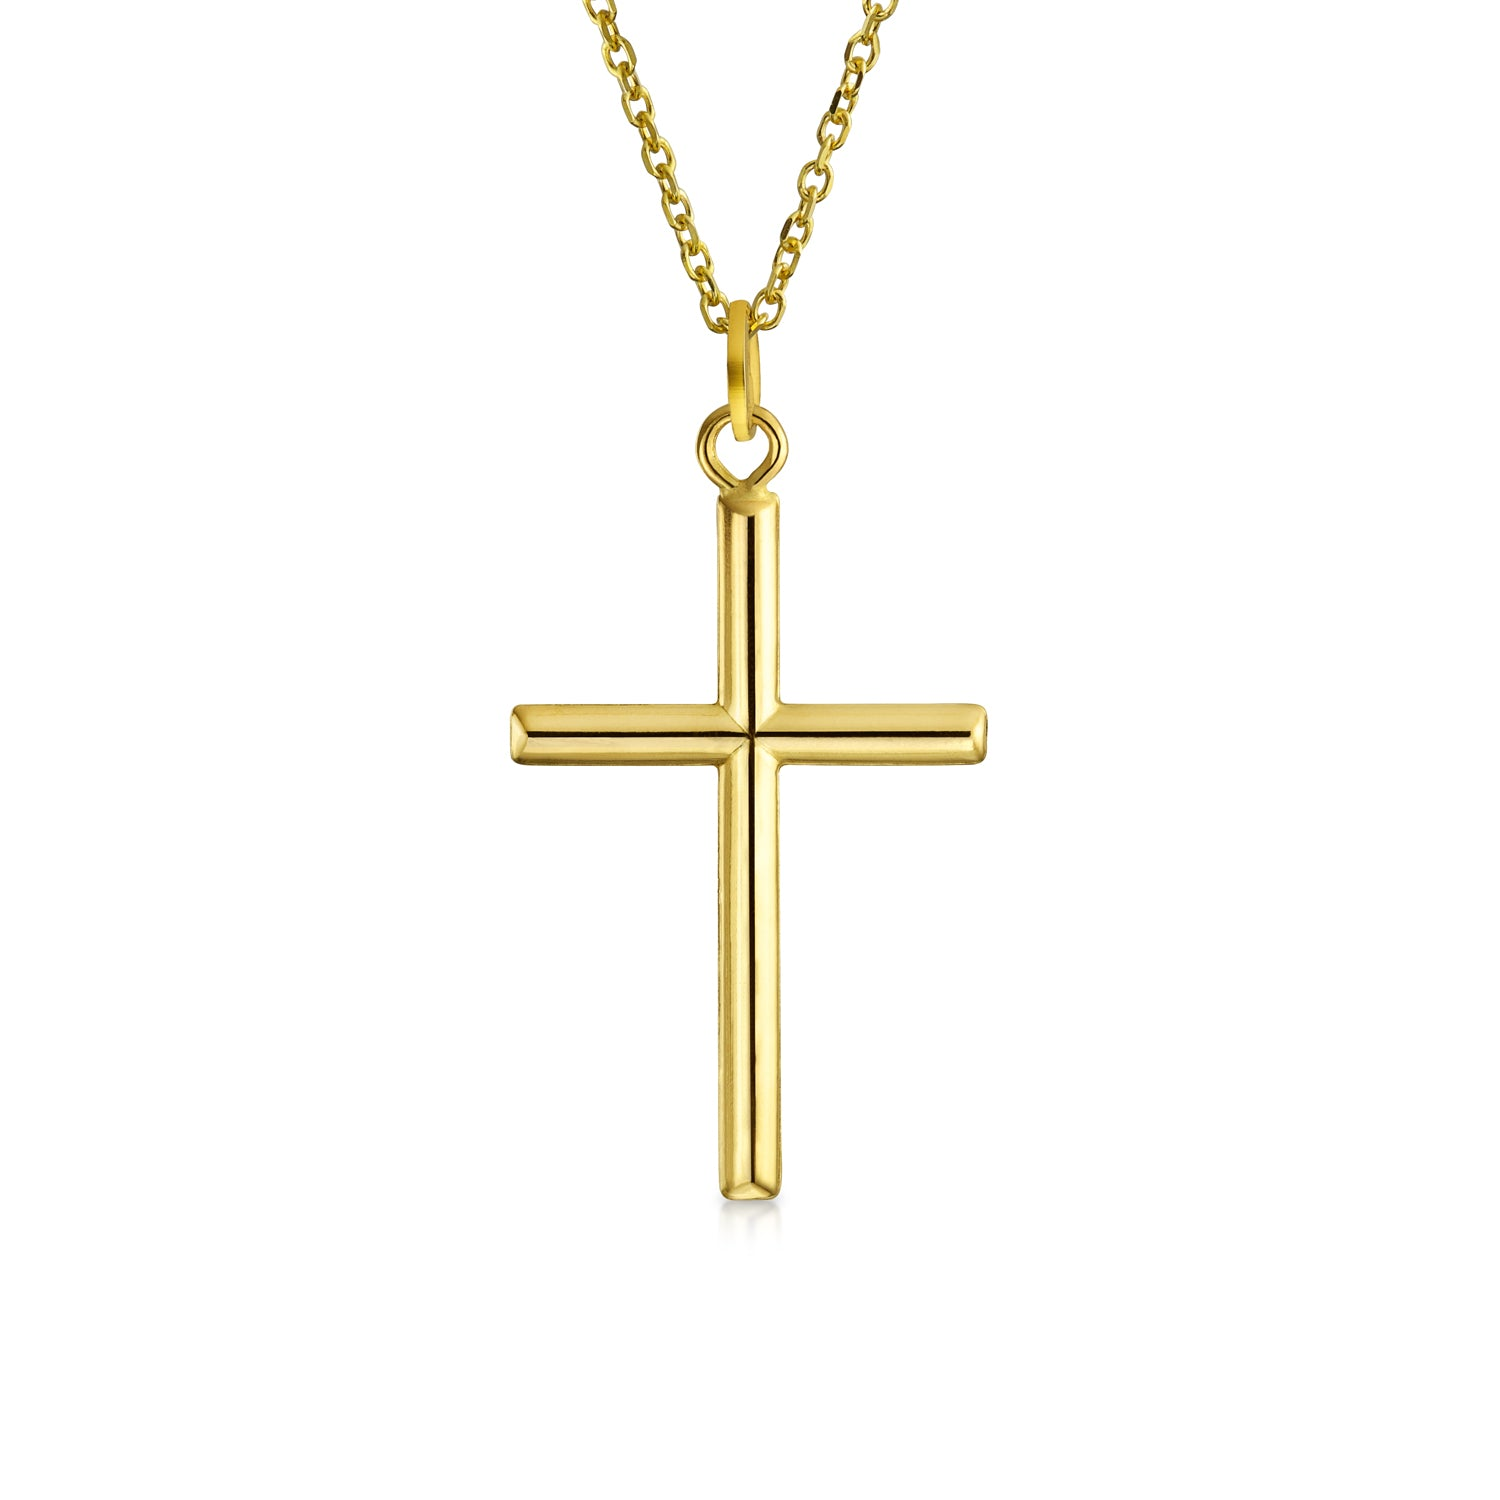 Jewels Obsession Cross Necklace 14K Rose Gold-plated 925 Silver Latin Cross Pendant with 16 Necklace